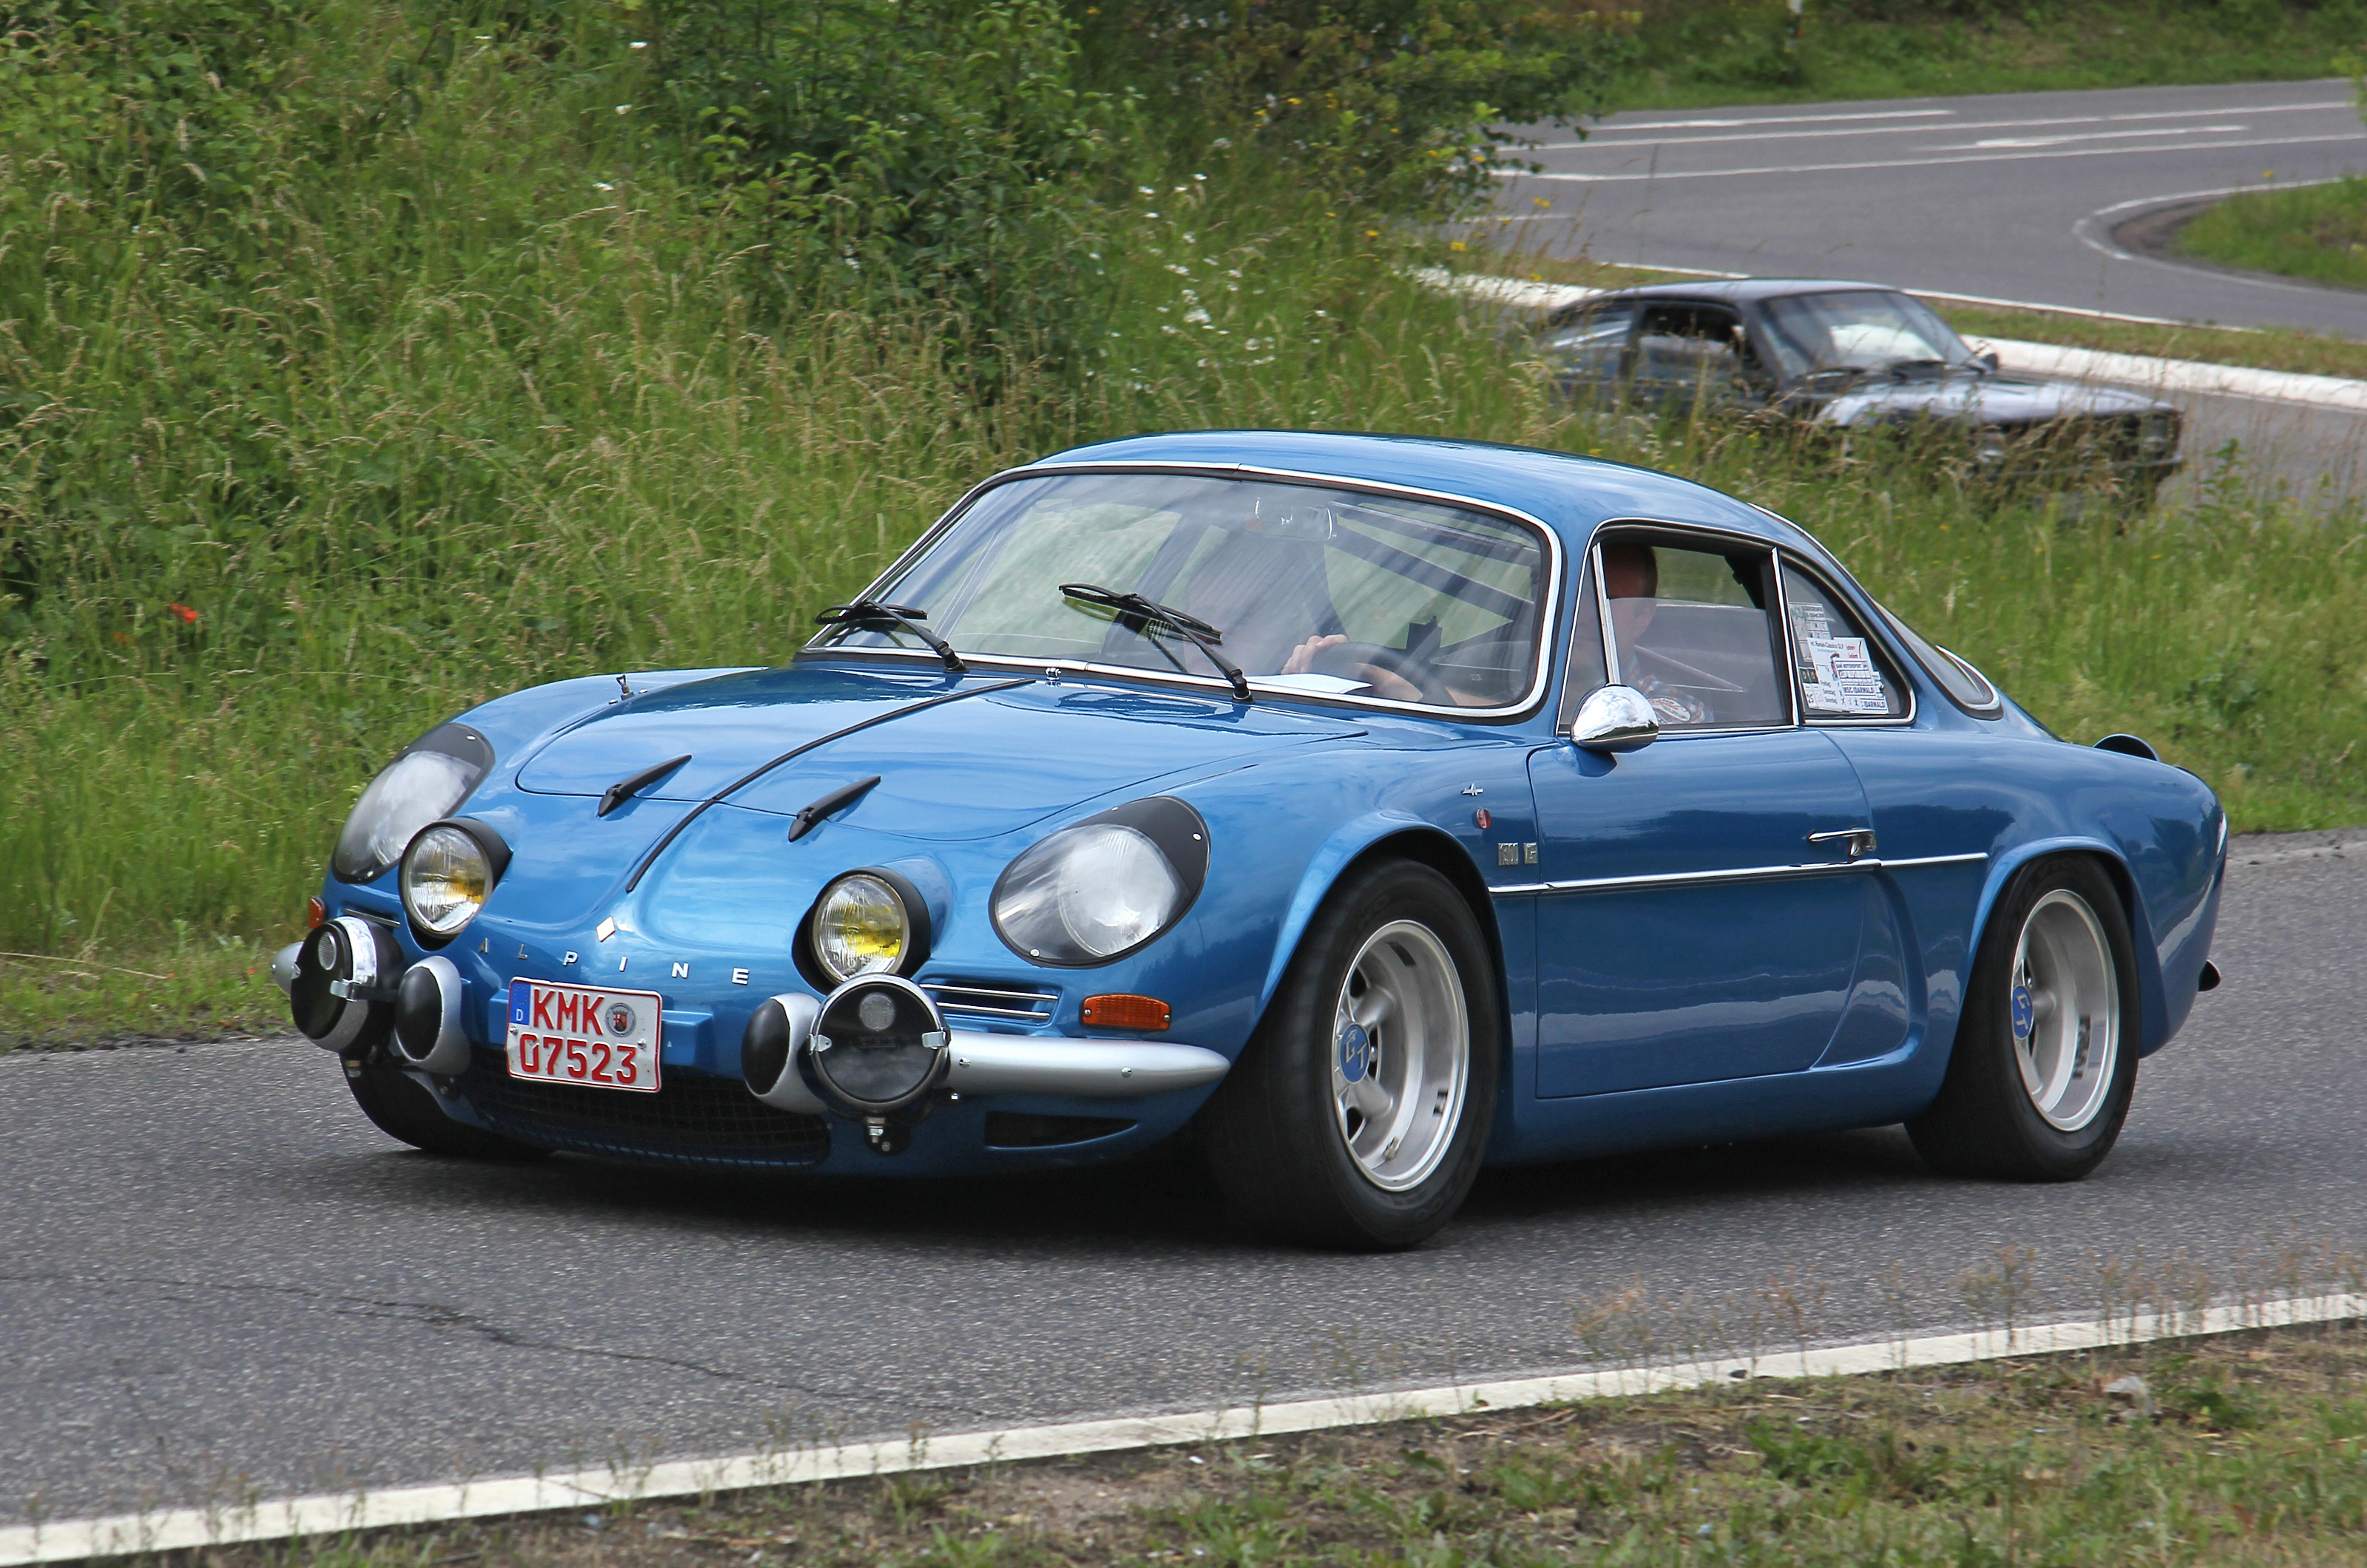 file renault alpine a 110 sp jpg wikimedia commons. Black Bedroom Furniture Sets. Home Design Ideas